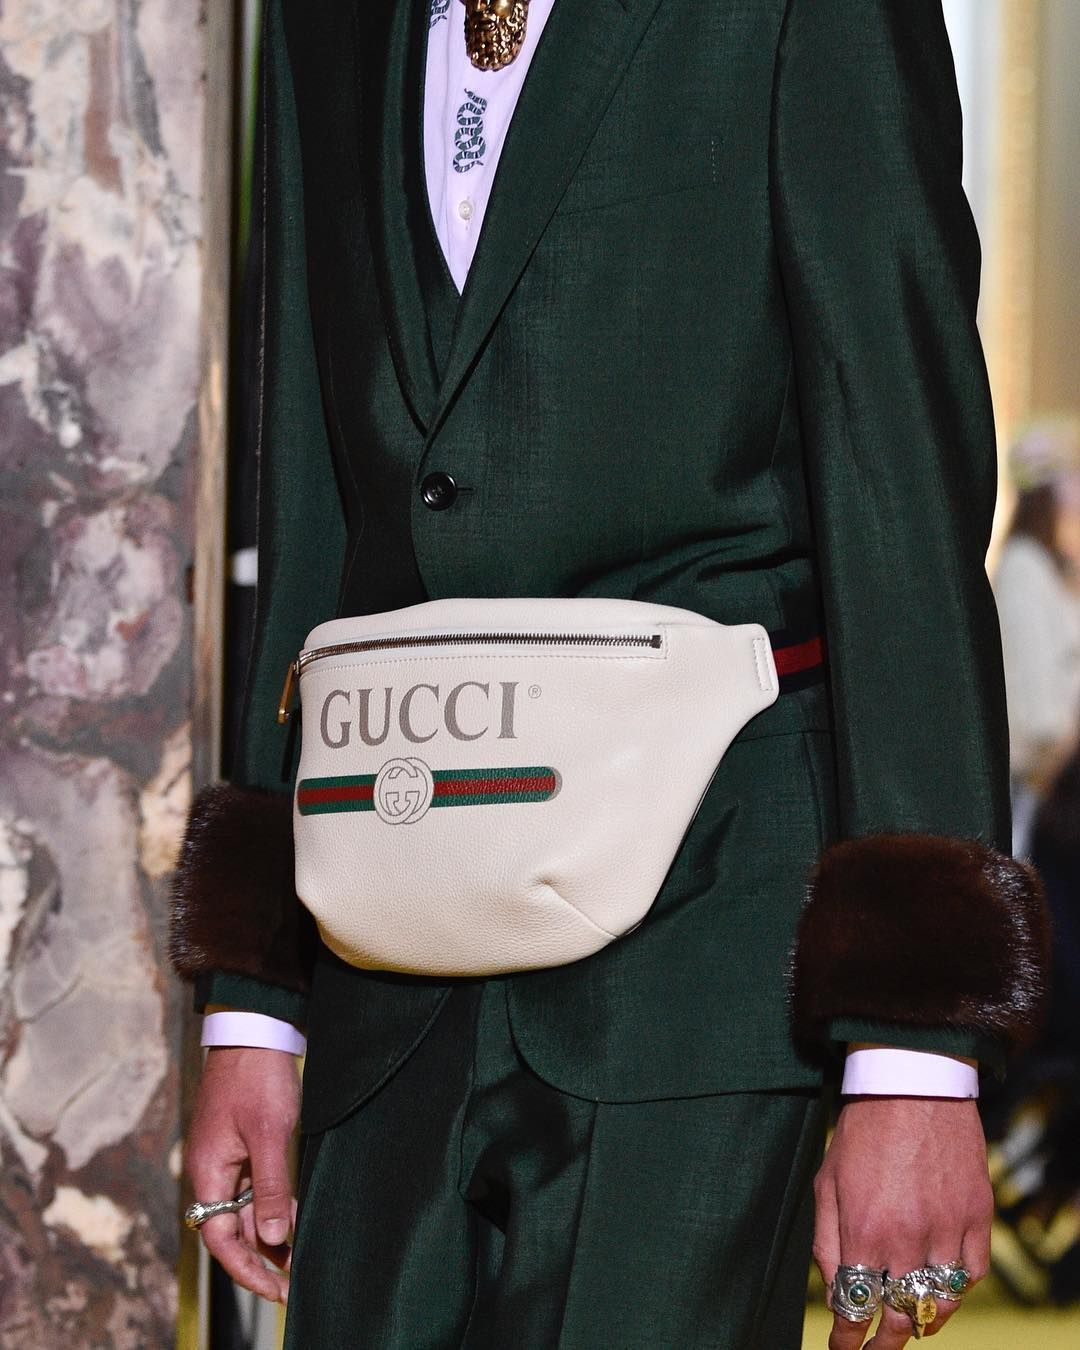 69763e1f5604 Gucci goes normcore: Alessandro Michele presented an upgraded version of a fanny  pack in his cruise 2018 show. #GucciCruise18 #Gucci #GucciSS17 ...